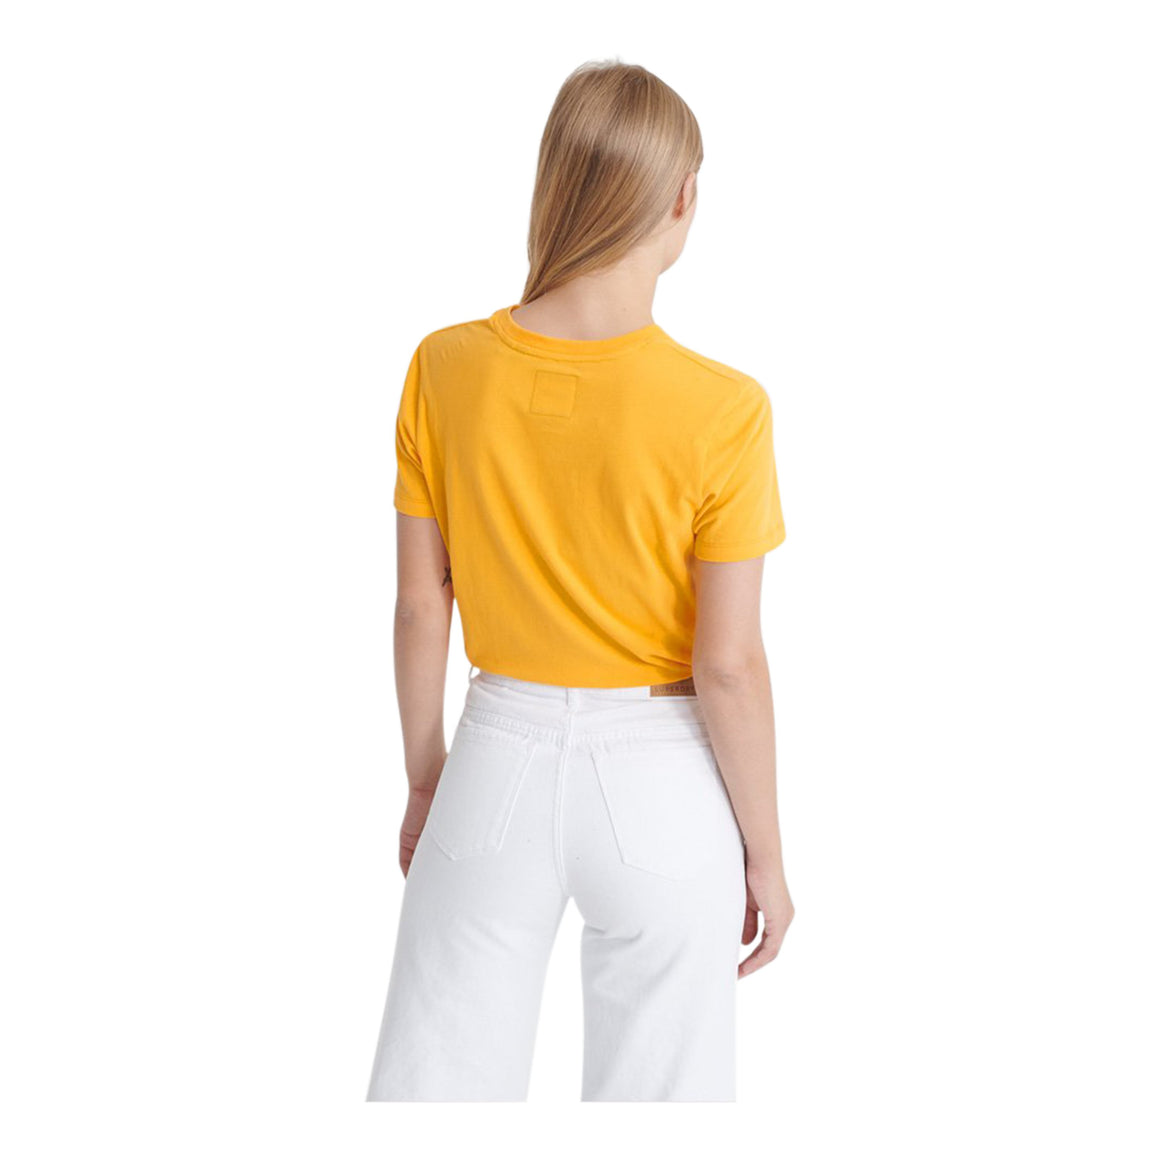 Flock Entry Tee for Women in Yellow